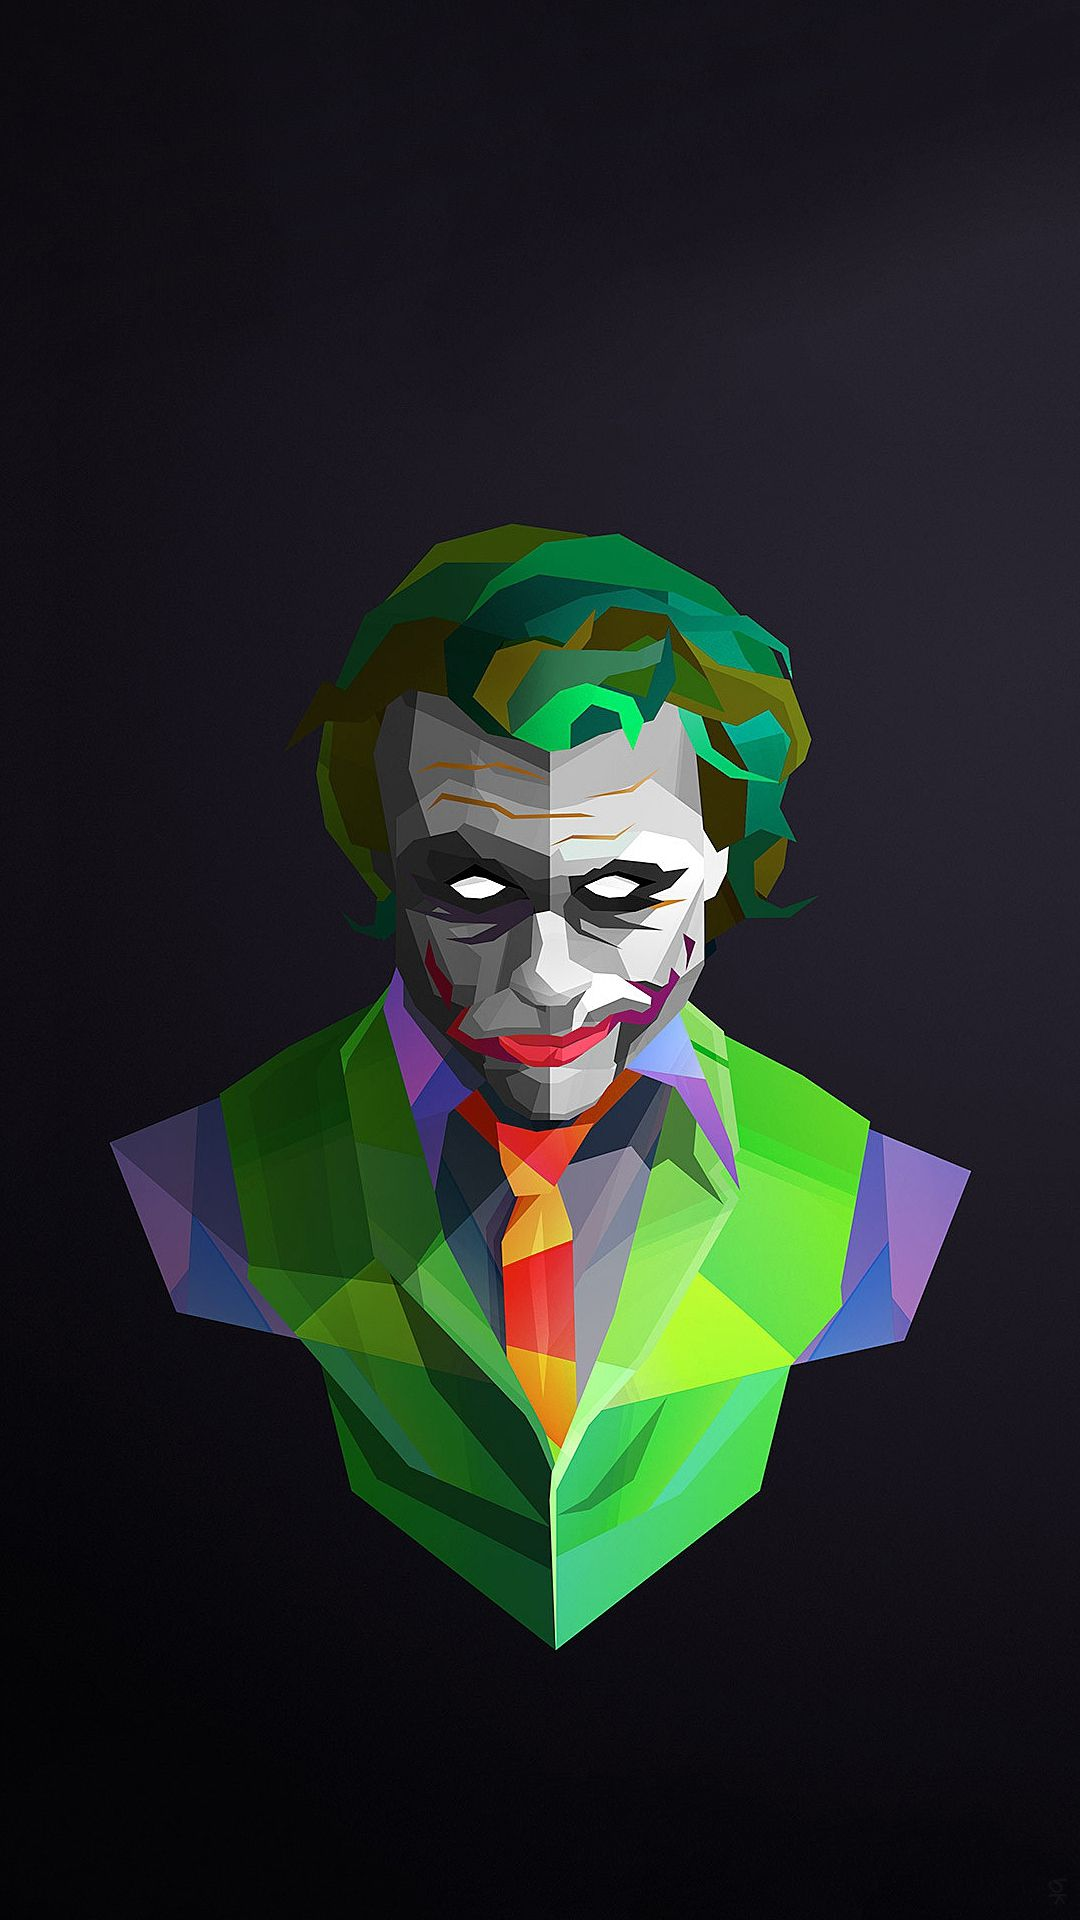 You Can Find Other Wallpaper For IPhone OnGames Categories Or Related Keywordjoker Hd Iphone 6 Plus Joker